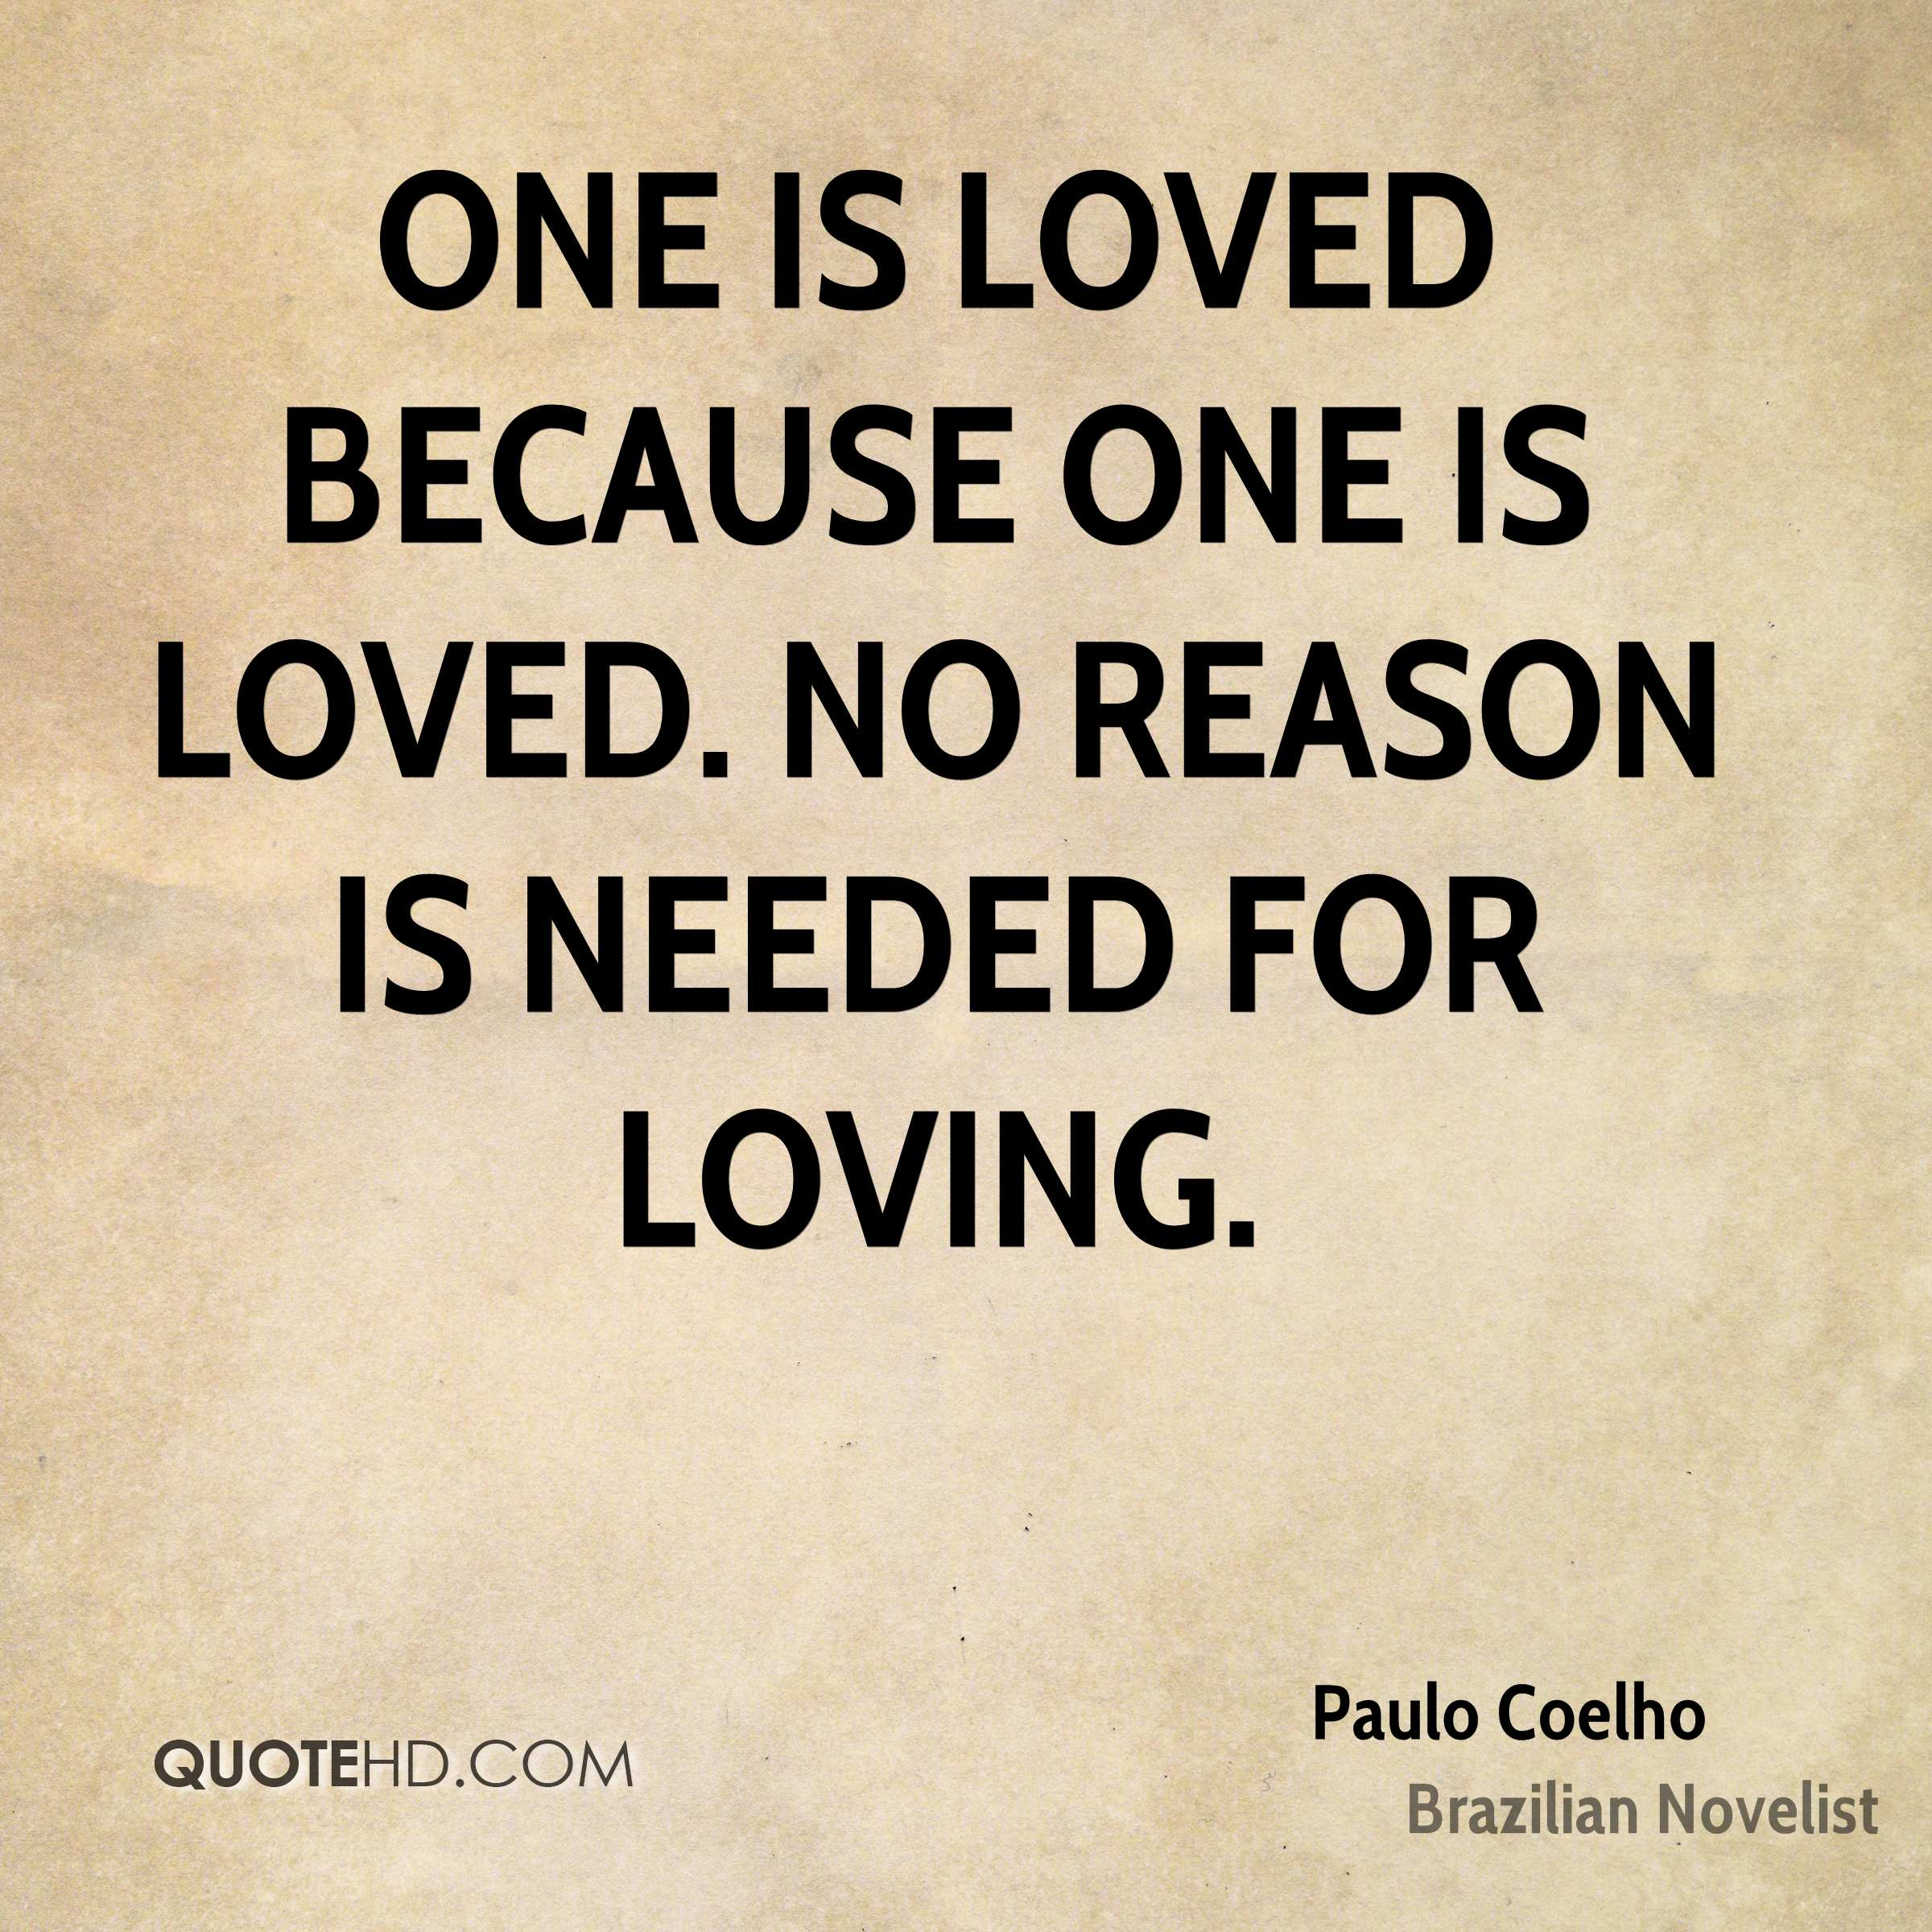 Quotes About Loving Books Paulo Coelho Love Quotes  Quotehd